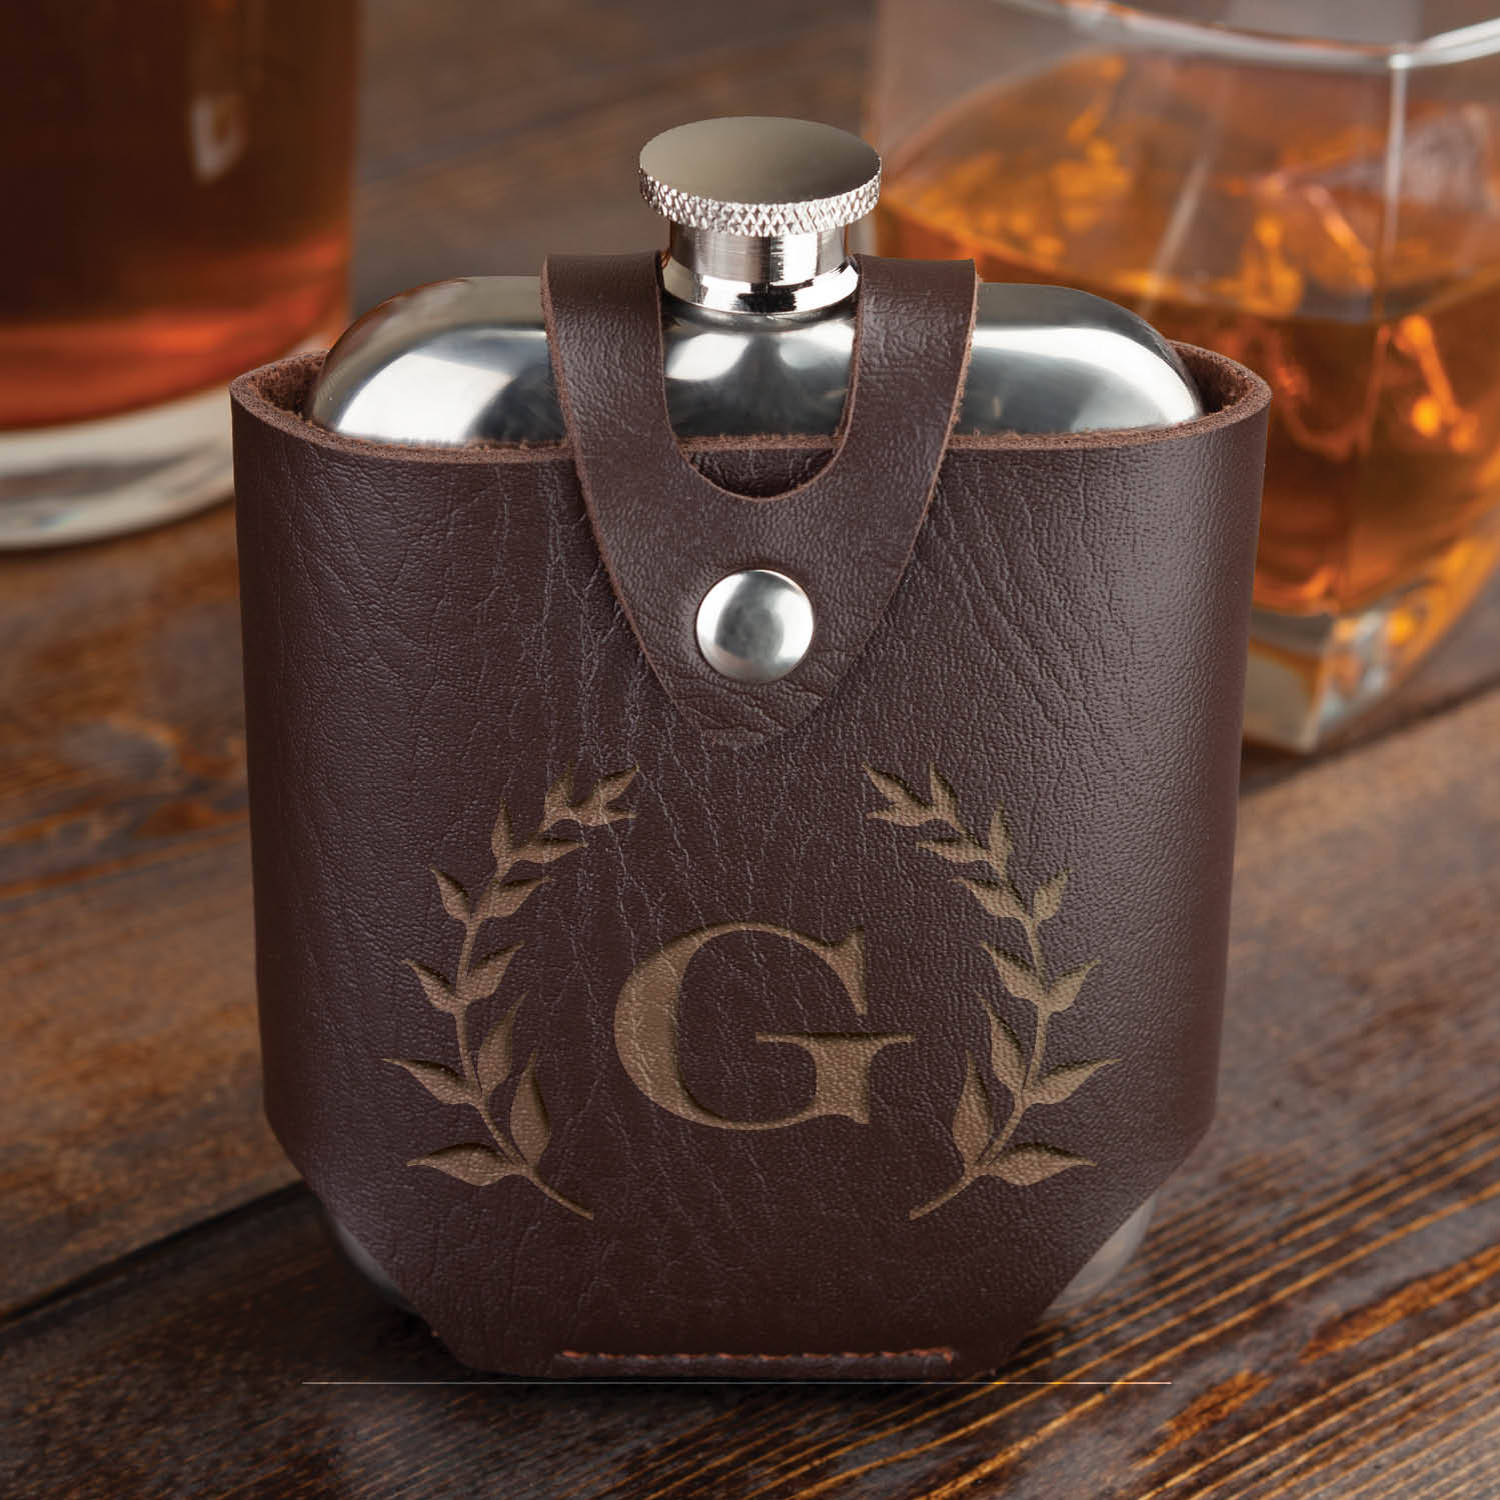 Wreath Initial Personalized Flask and Leather Case